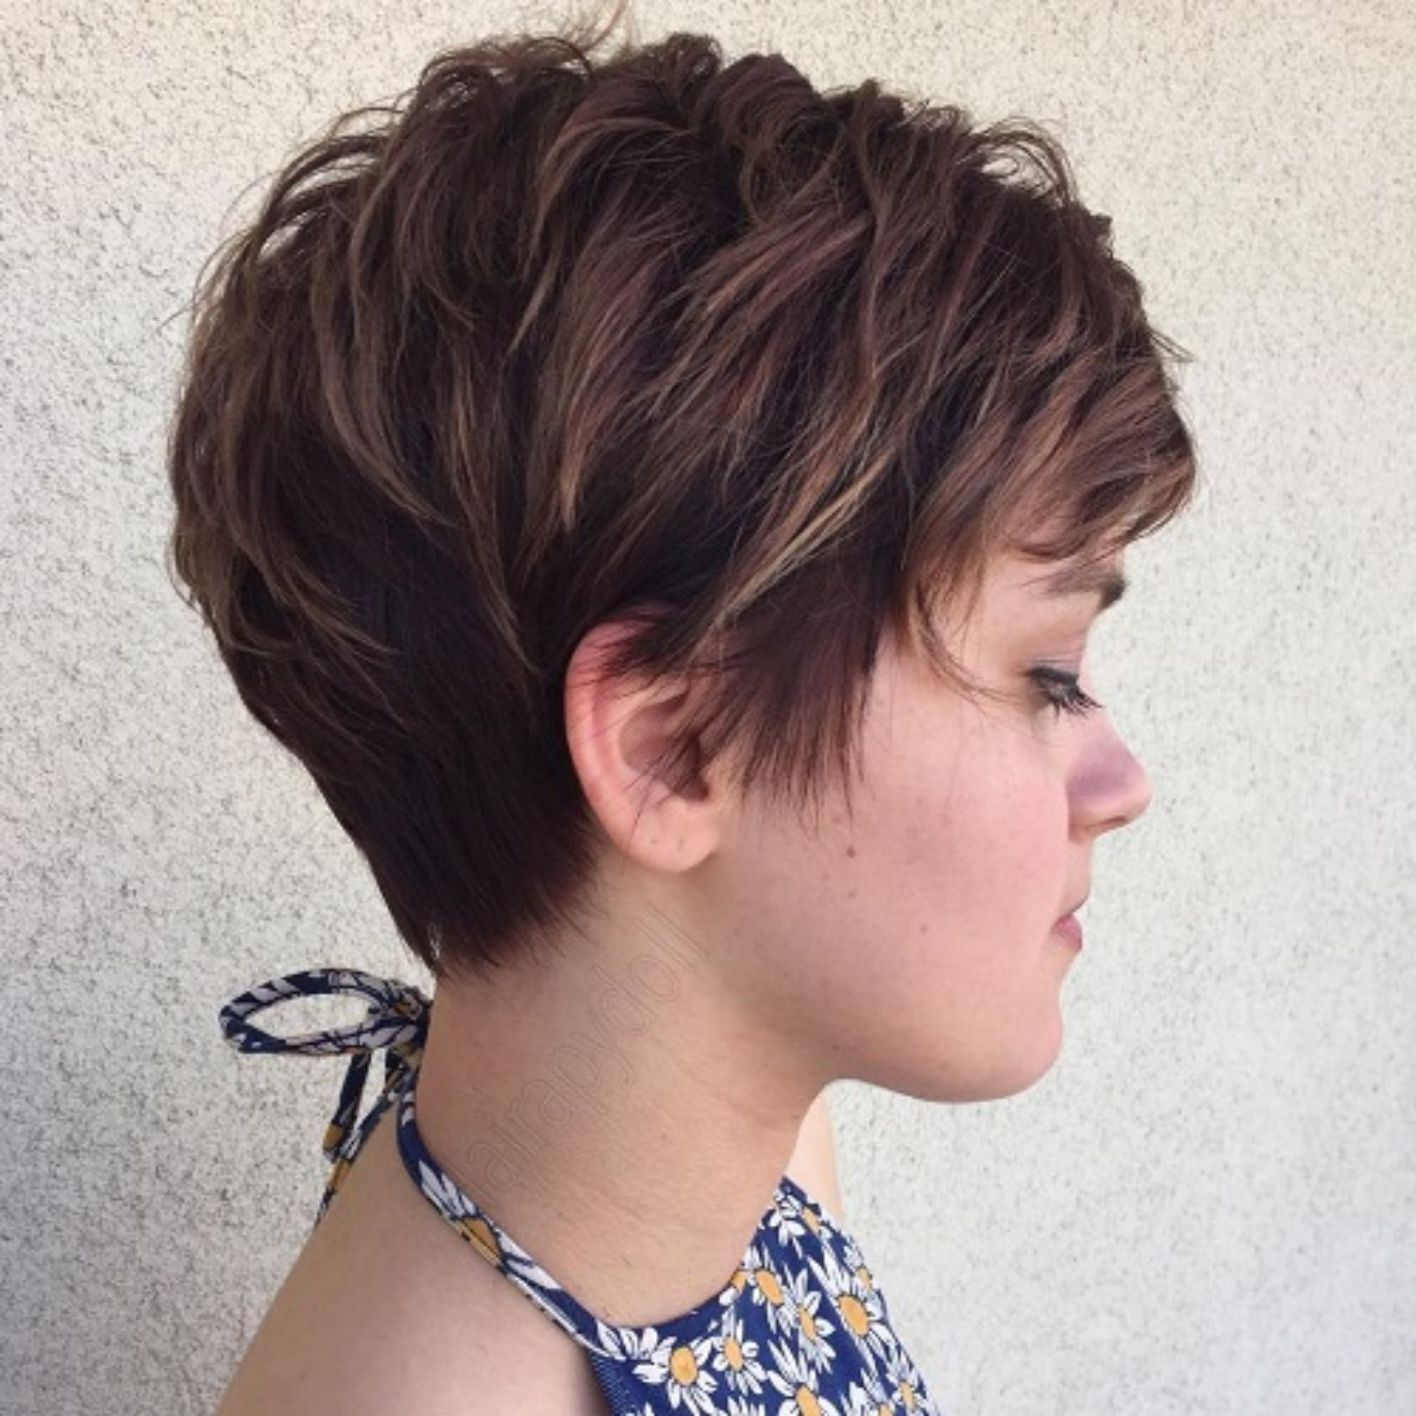 Brown Feathered Pixie In 2020 Short Choppy Haircuts Choppy Haircuts Short Hair With Layers